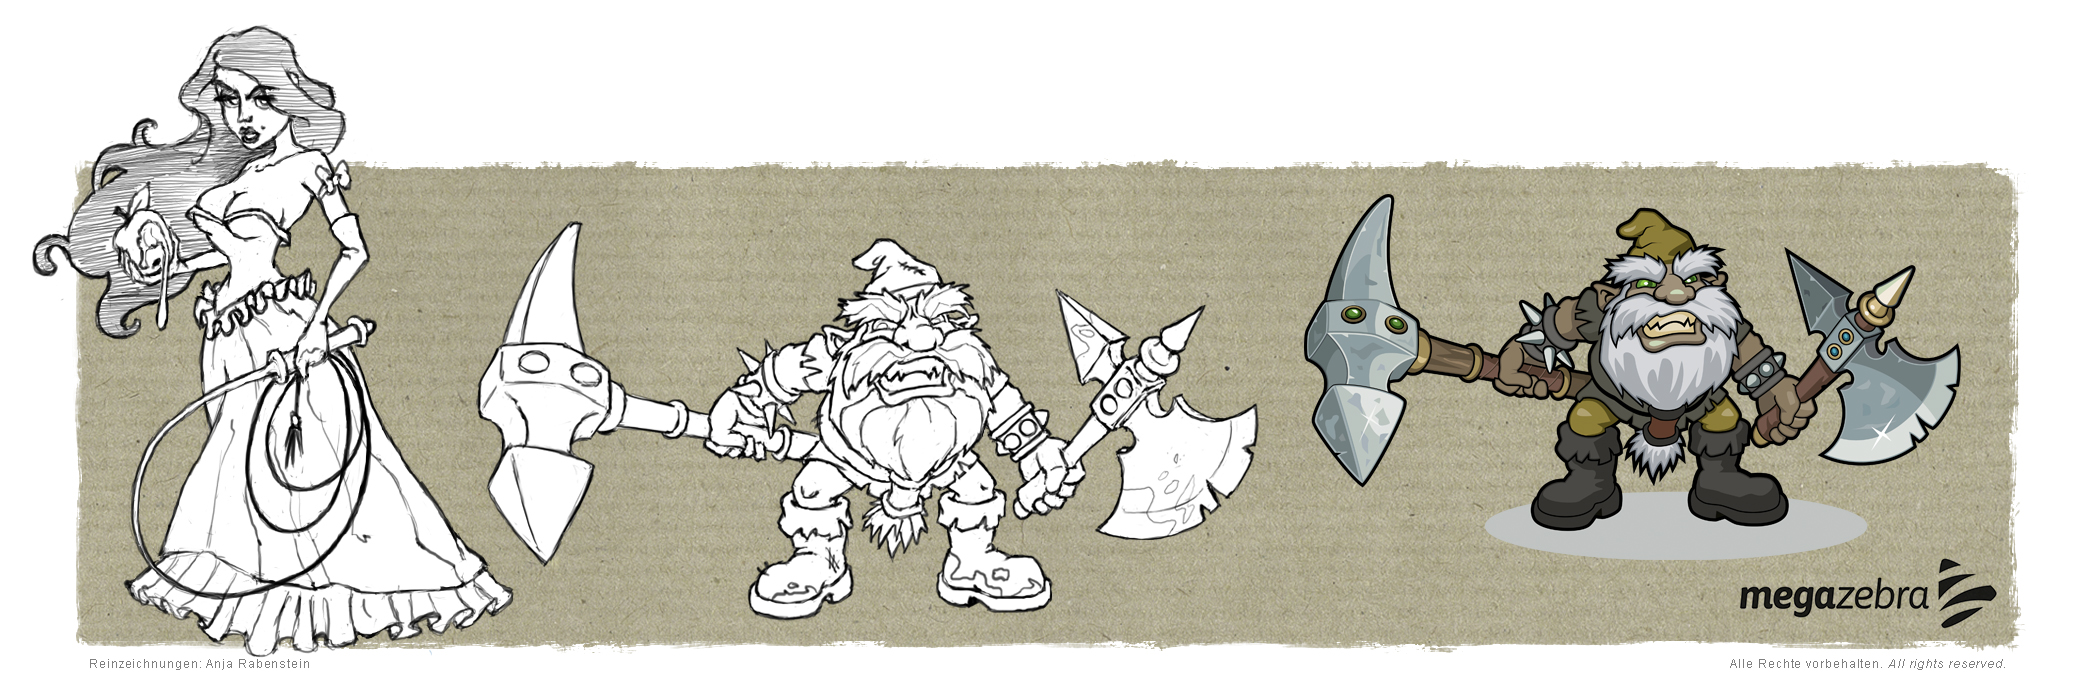 Character Development of Fairy Tale figures for a social browser game